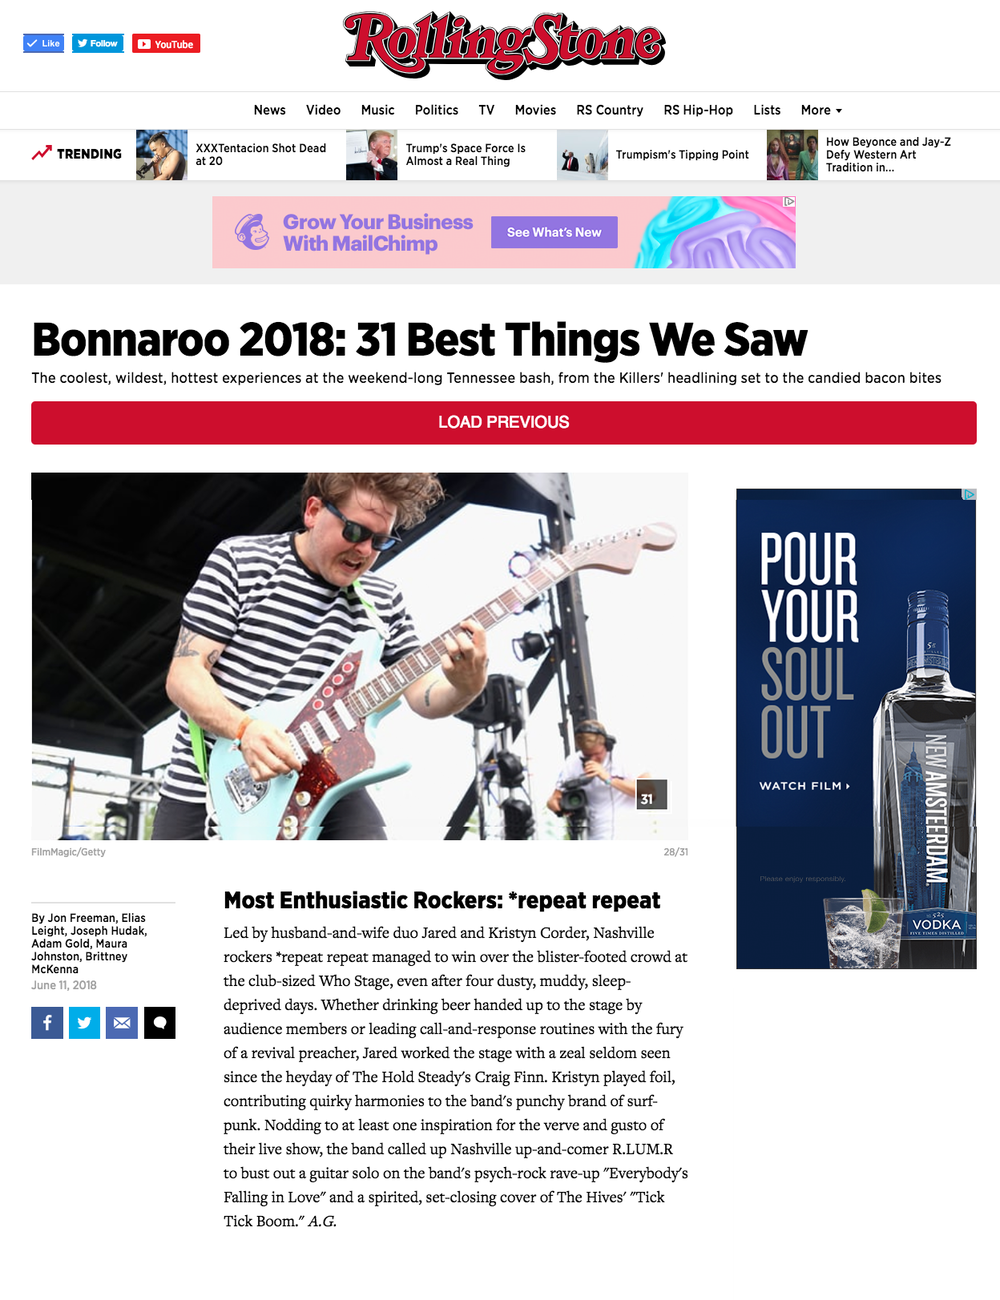 Rolling Stone  Most Enthusiastic Rockers  *repeat repeat   Bonnaroo 2018  31 Best Things We Saw.png